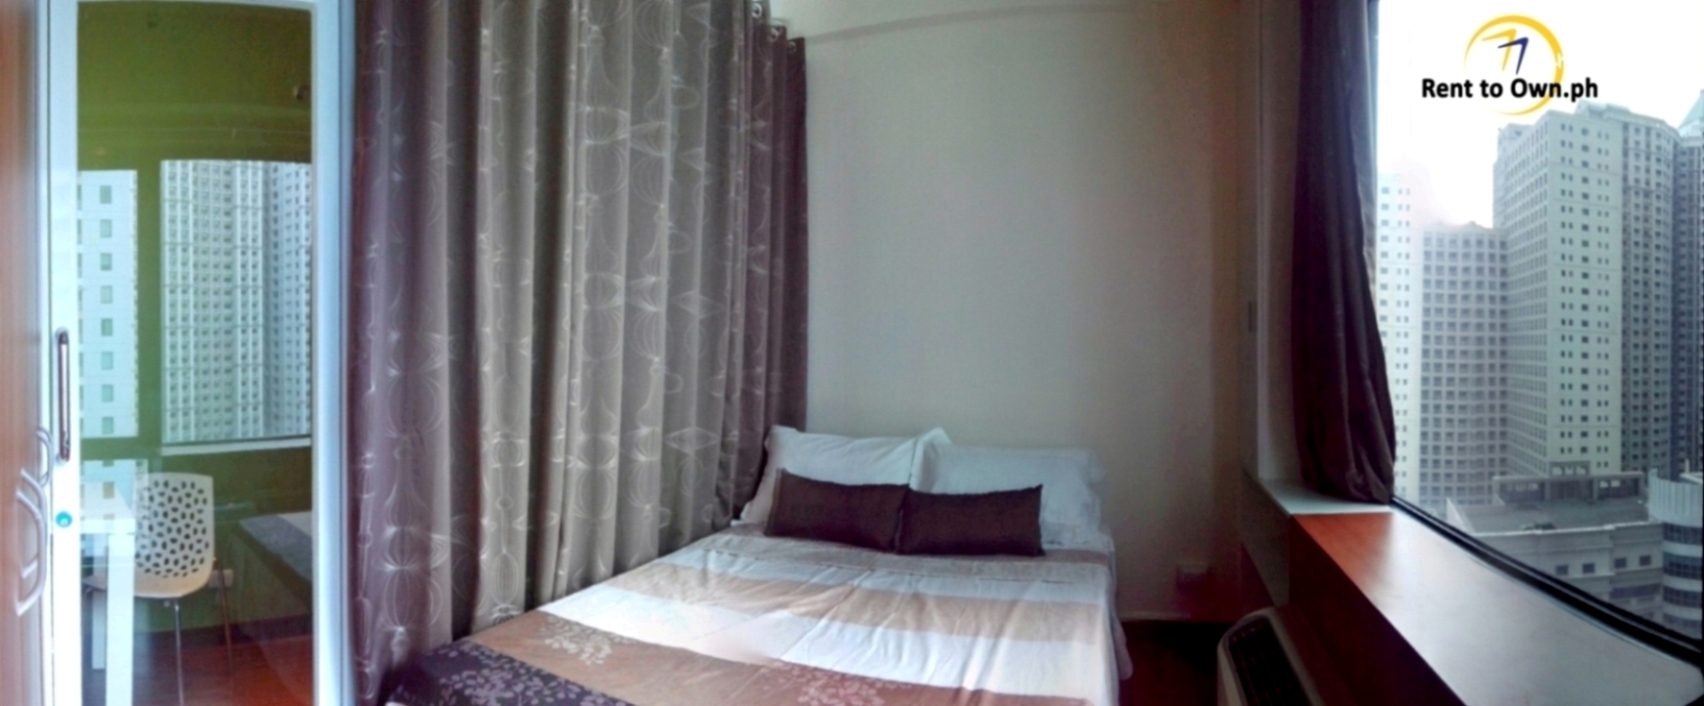 Bedroom - http://www.renttoown.ph